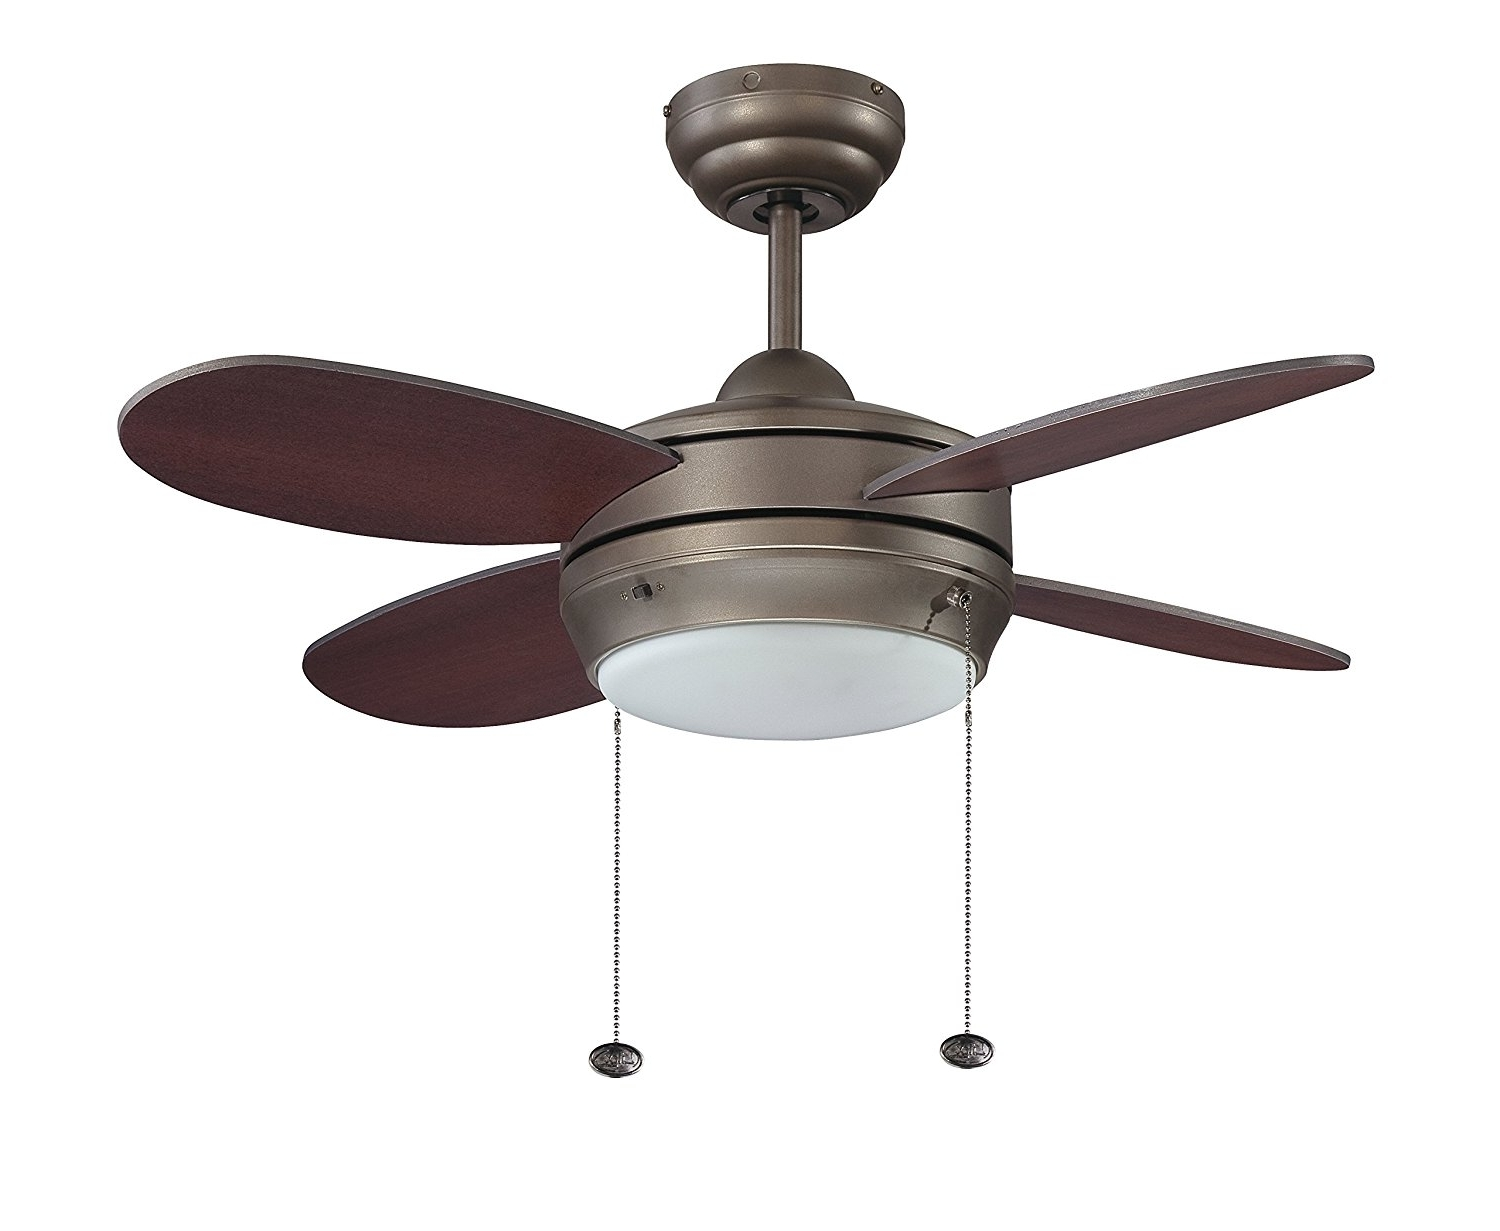 Trendy 24 Inch Outdoor Ceiling Fans With Light Pertaining To 24 Inch Ceiling Fan With Light Lowes Ceiling Lights Rustic Ceiling (Gallery 17 of 20)